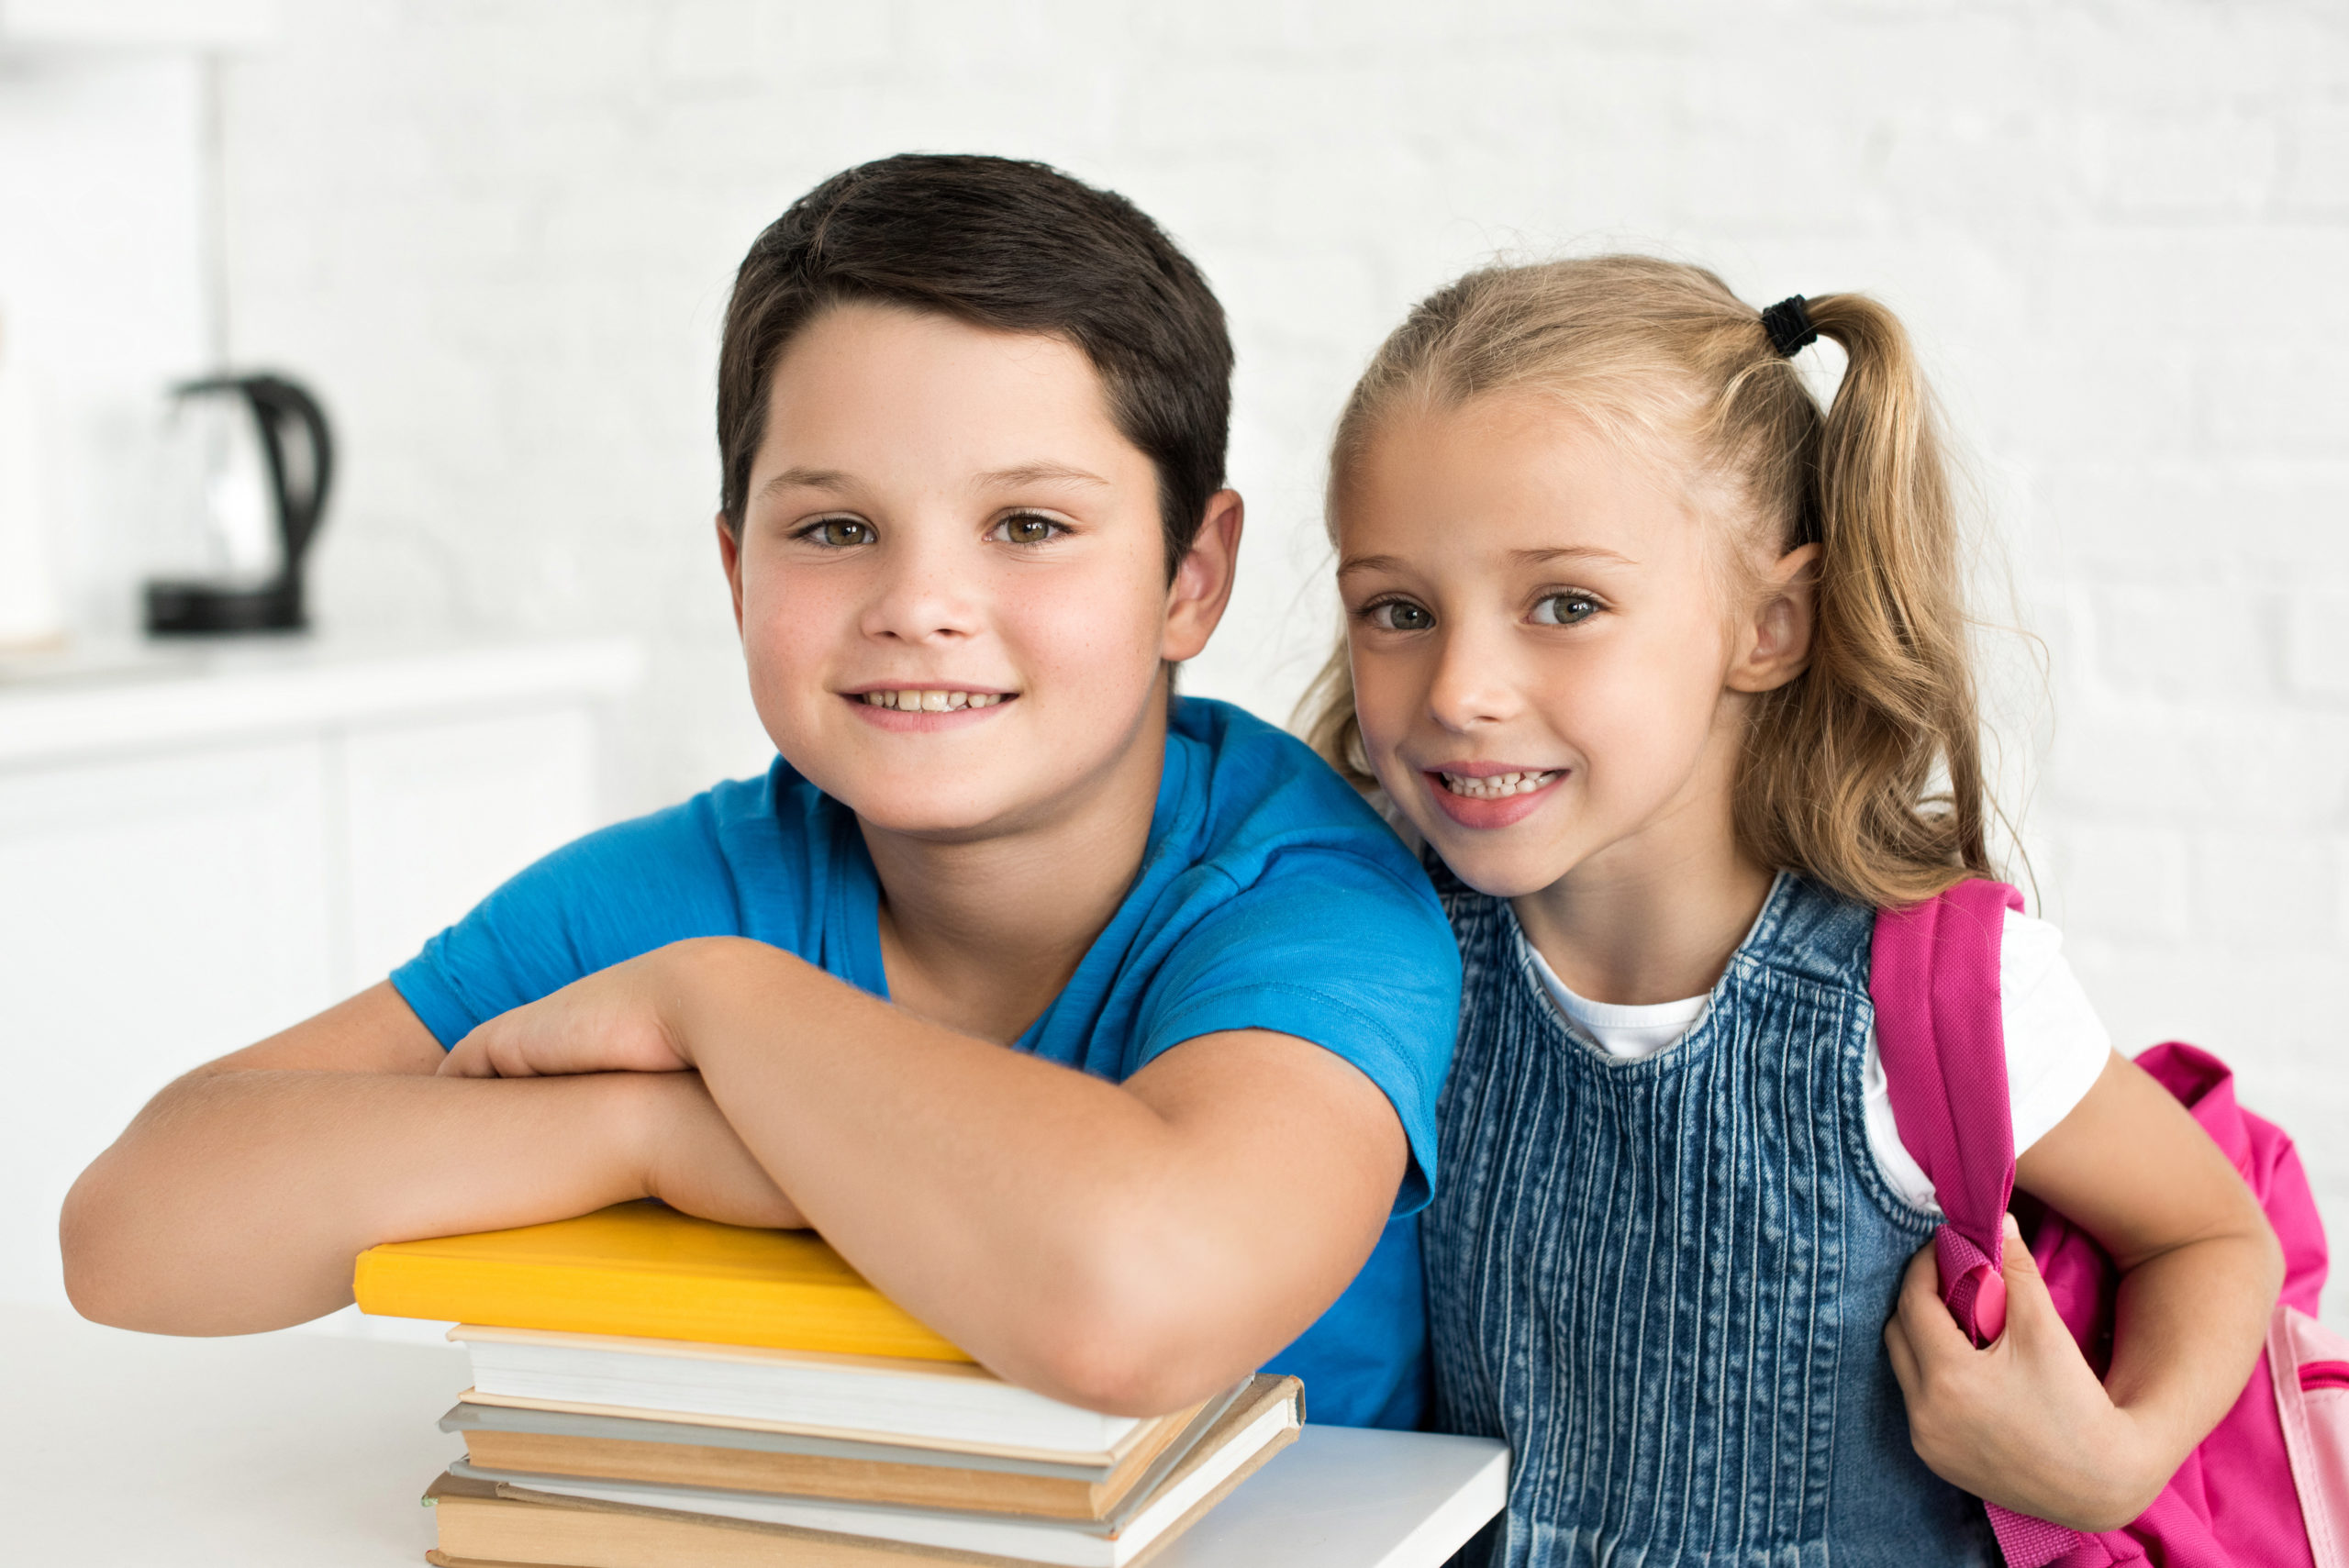 See the full time online courses for elementary school students